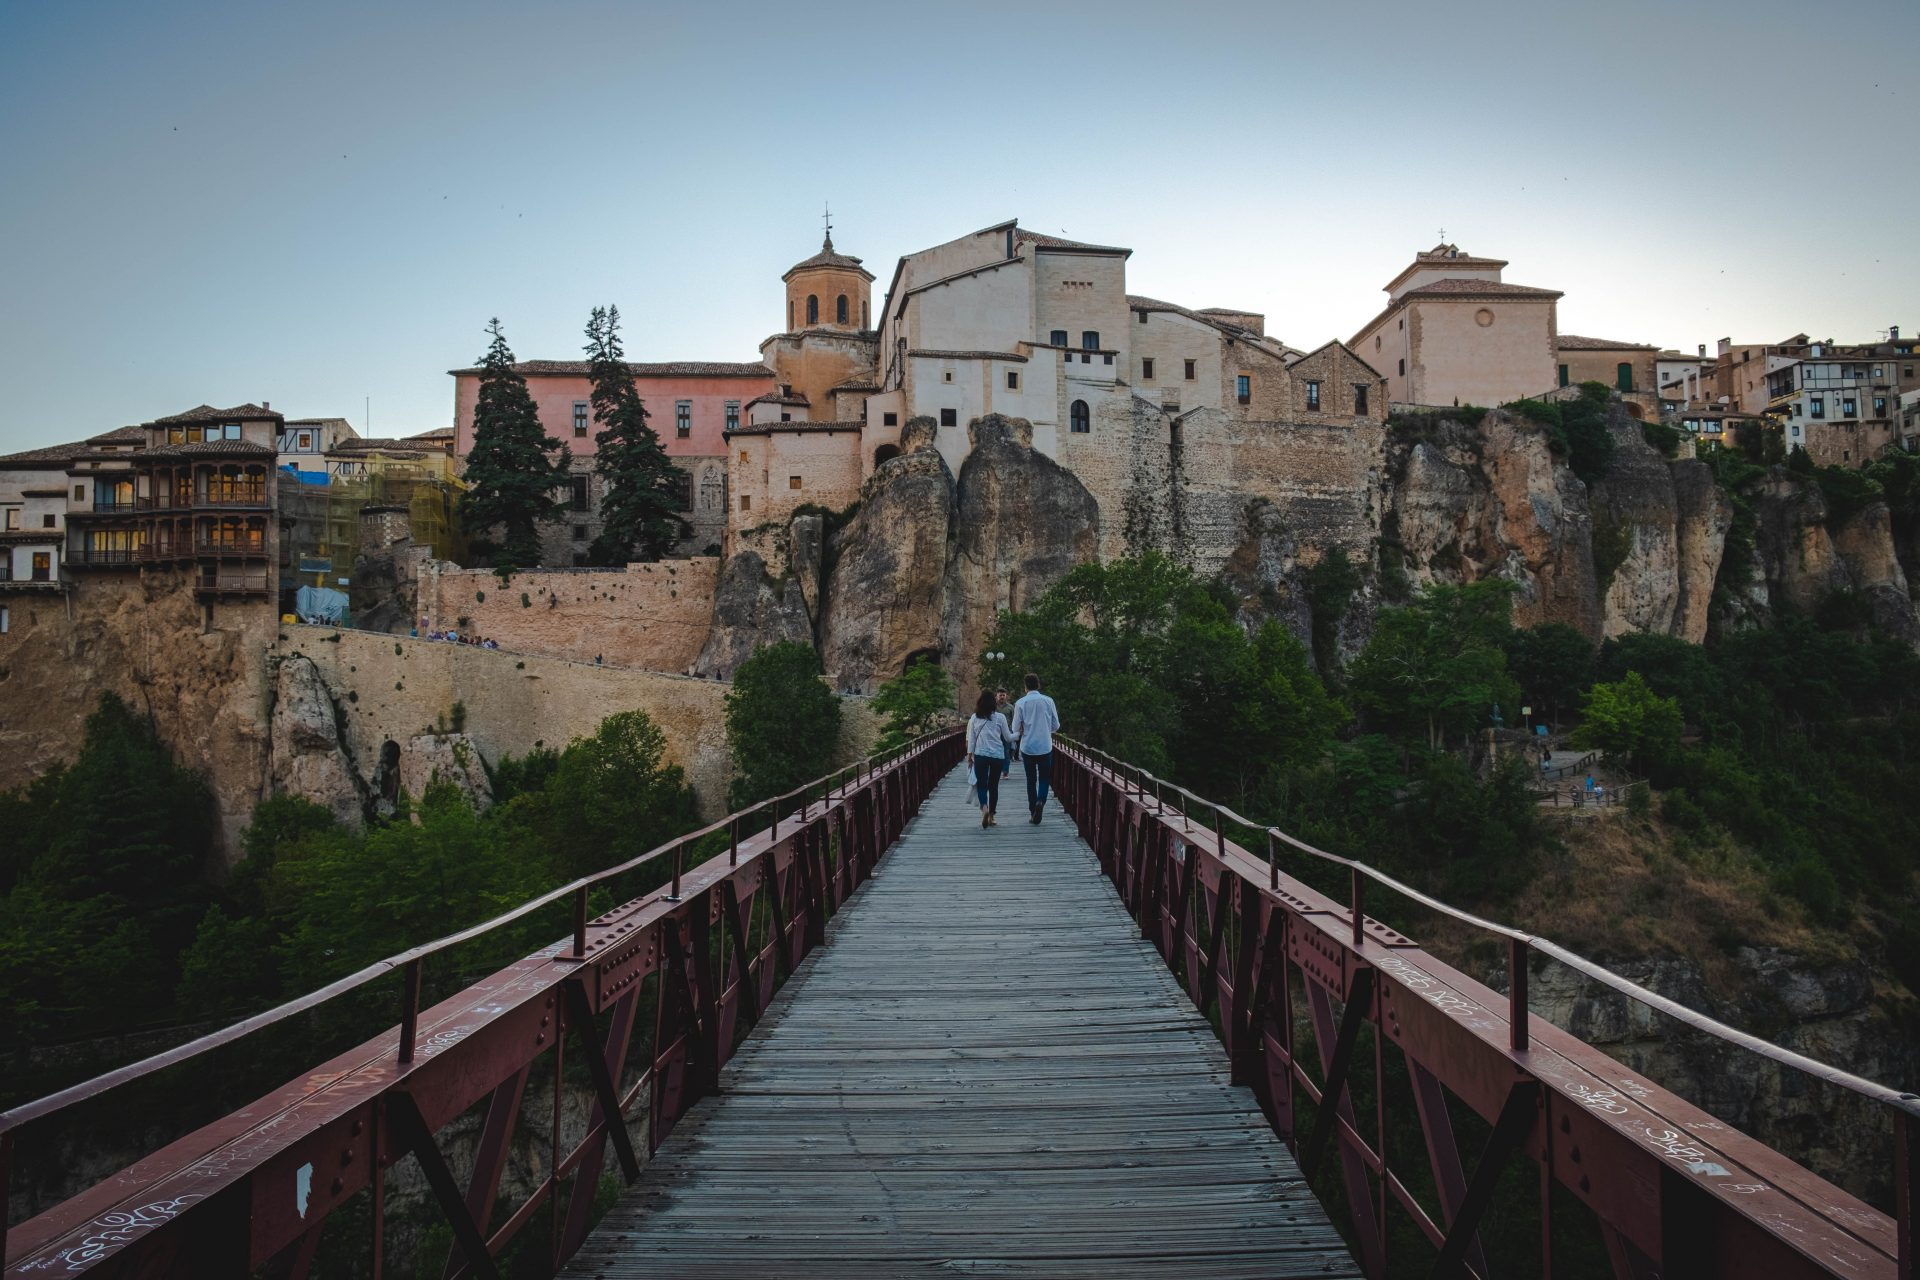 Couple walking on the puente de san pablo bridge towards the village of Cuenca photo by Jo Kassis